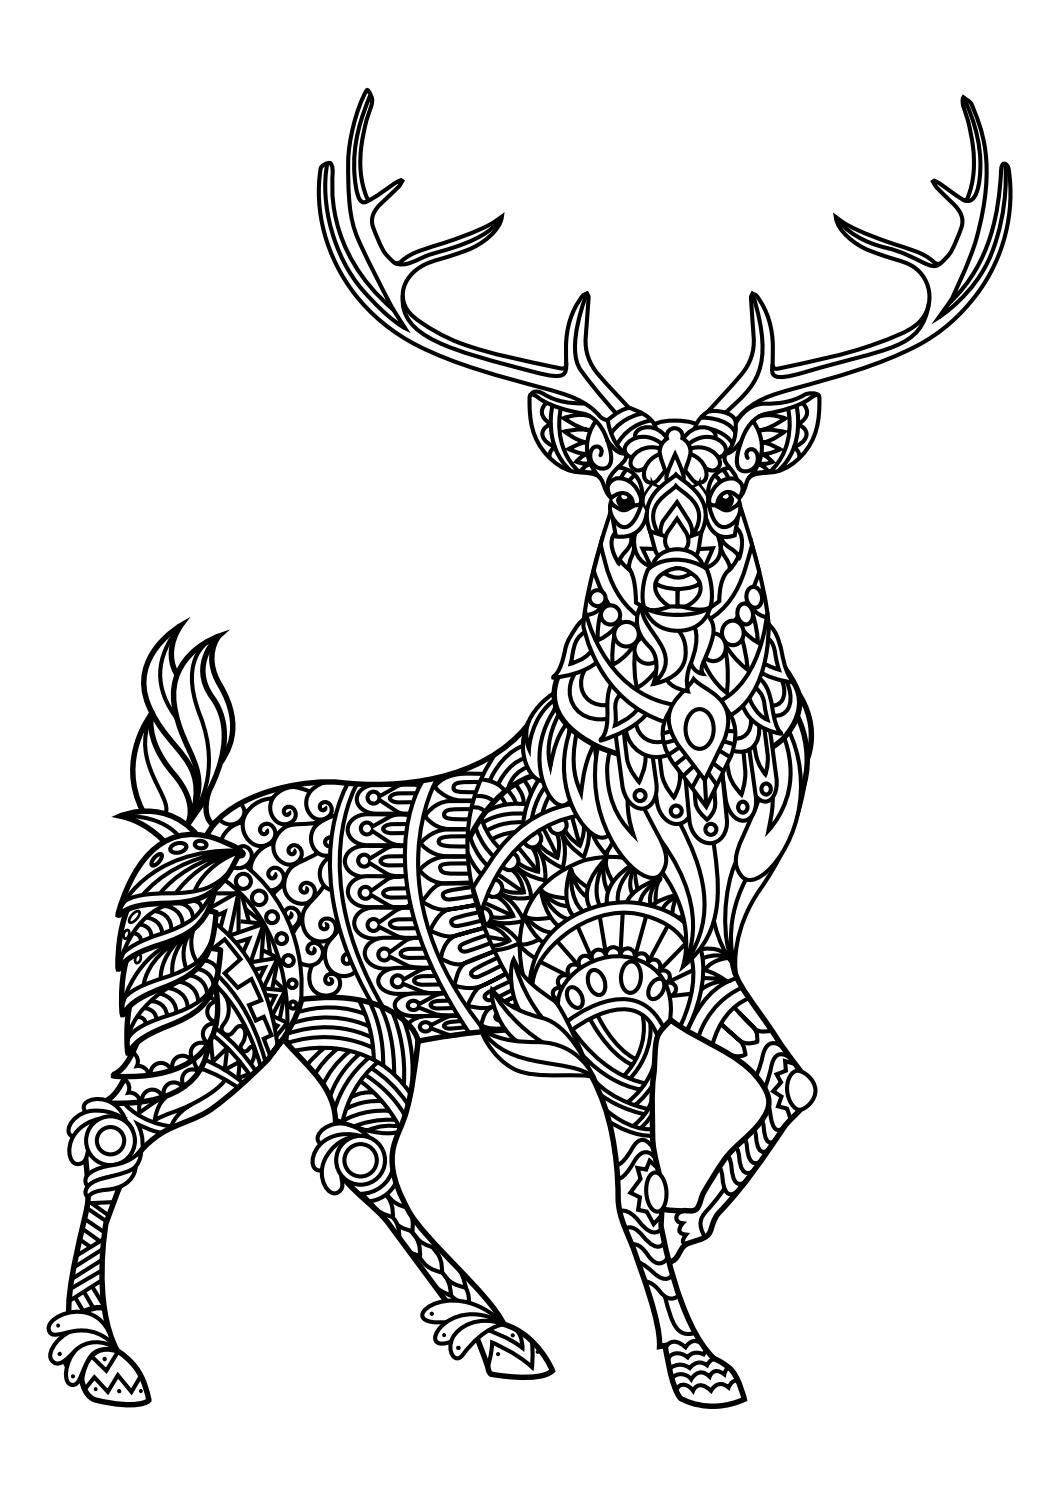 Animal coloring pages pdf Deer coloring pages, Mandala